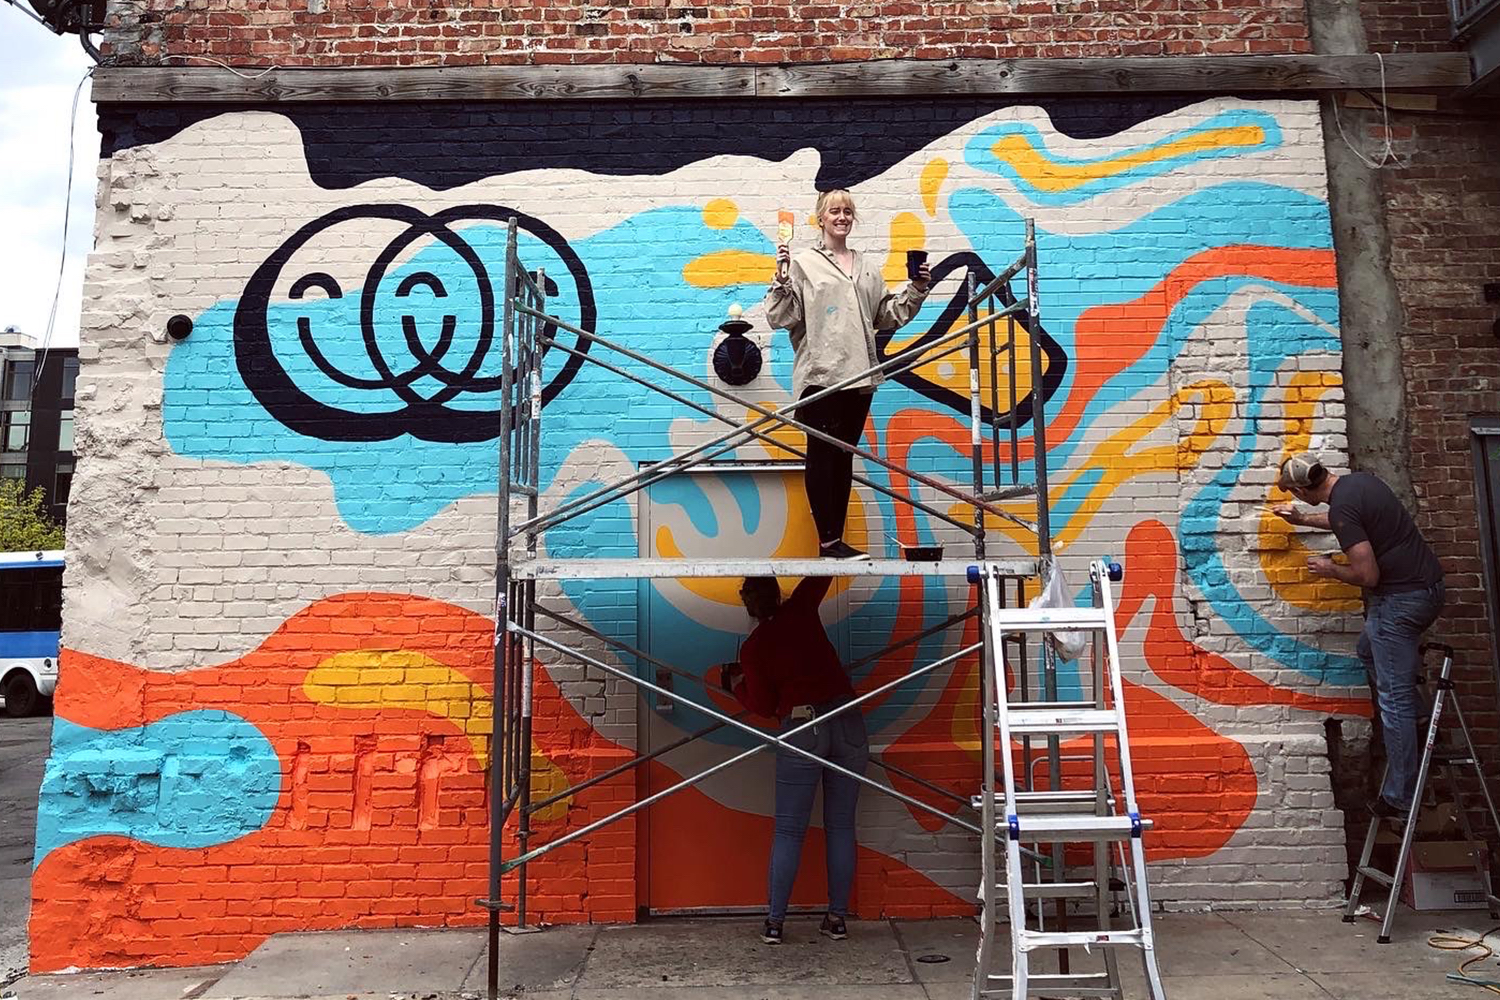 People standing on scaffolding painting a mural on a brick wall